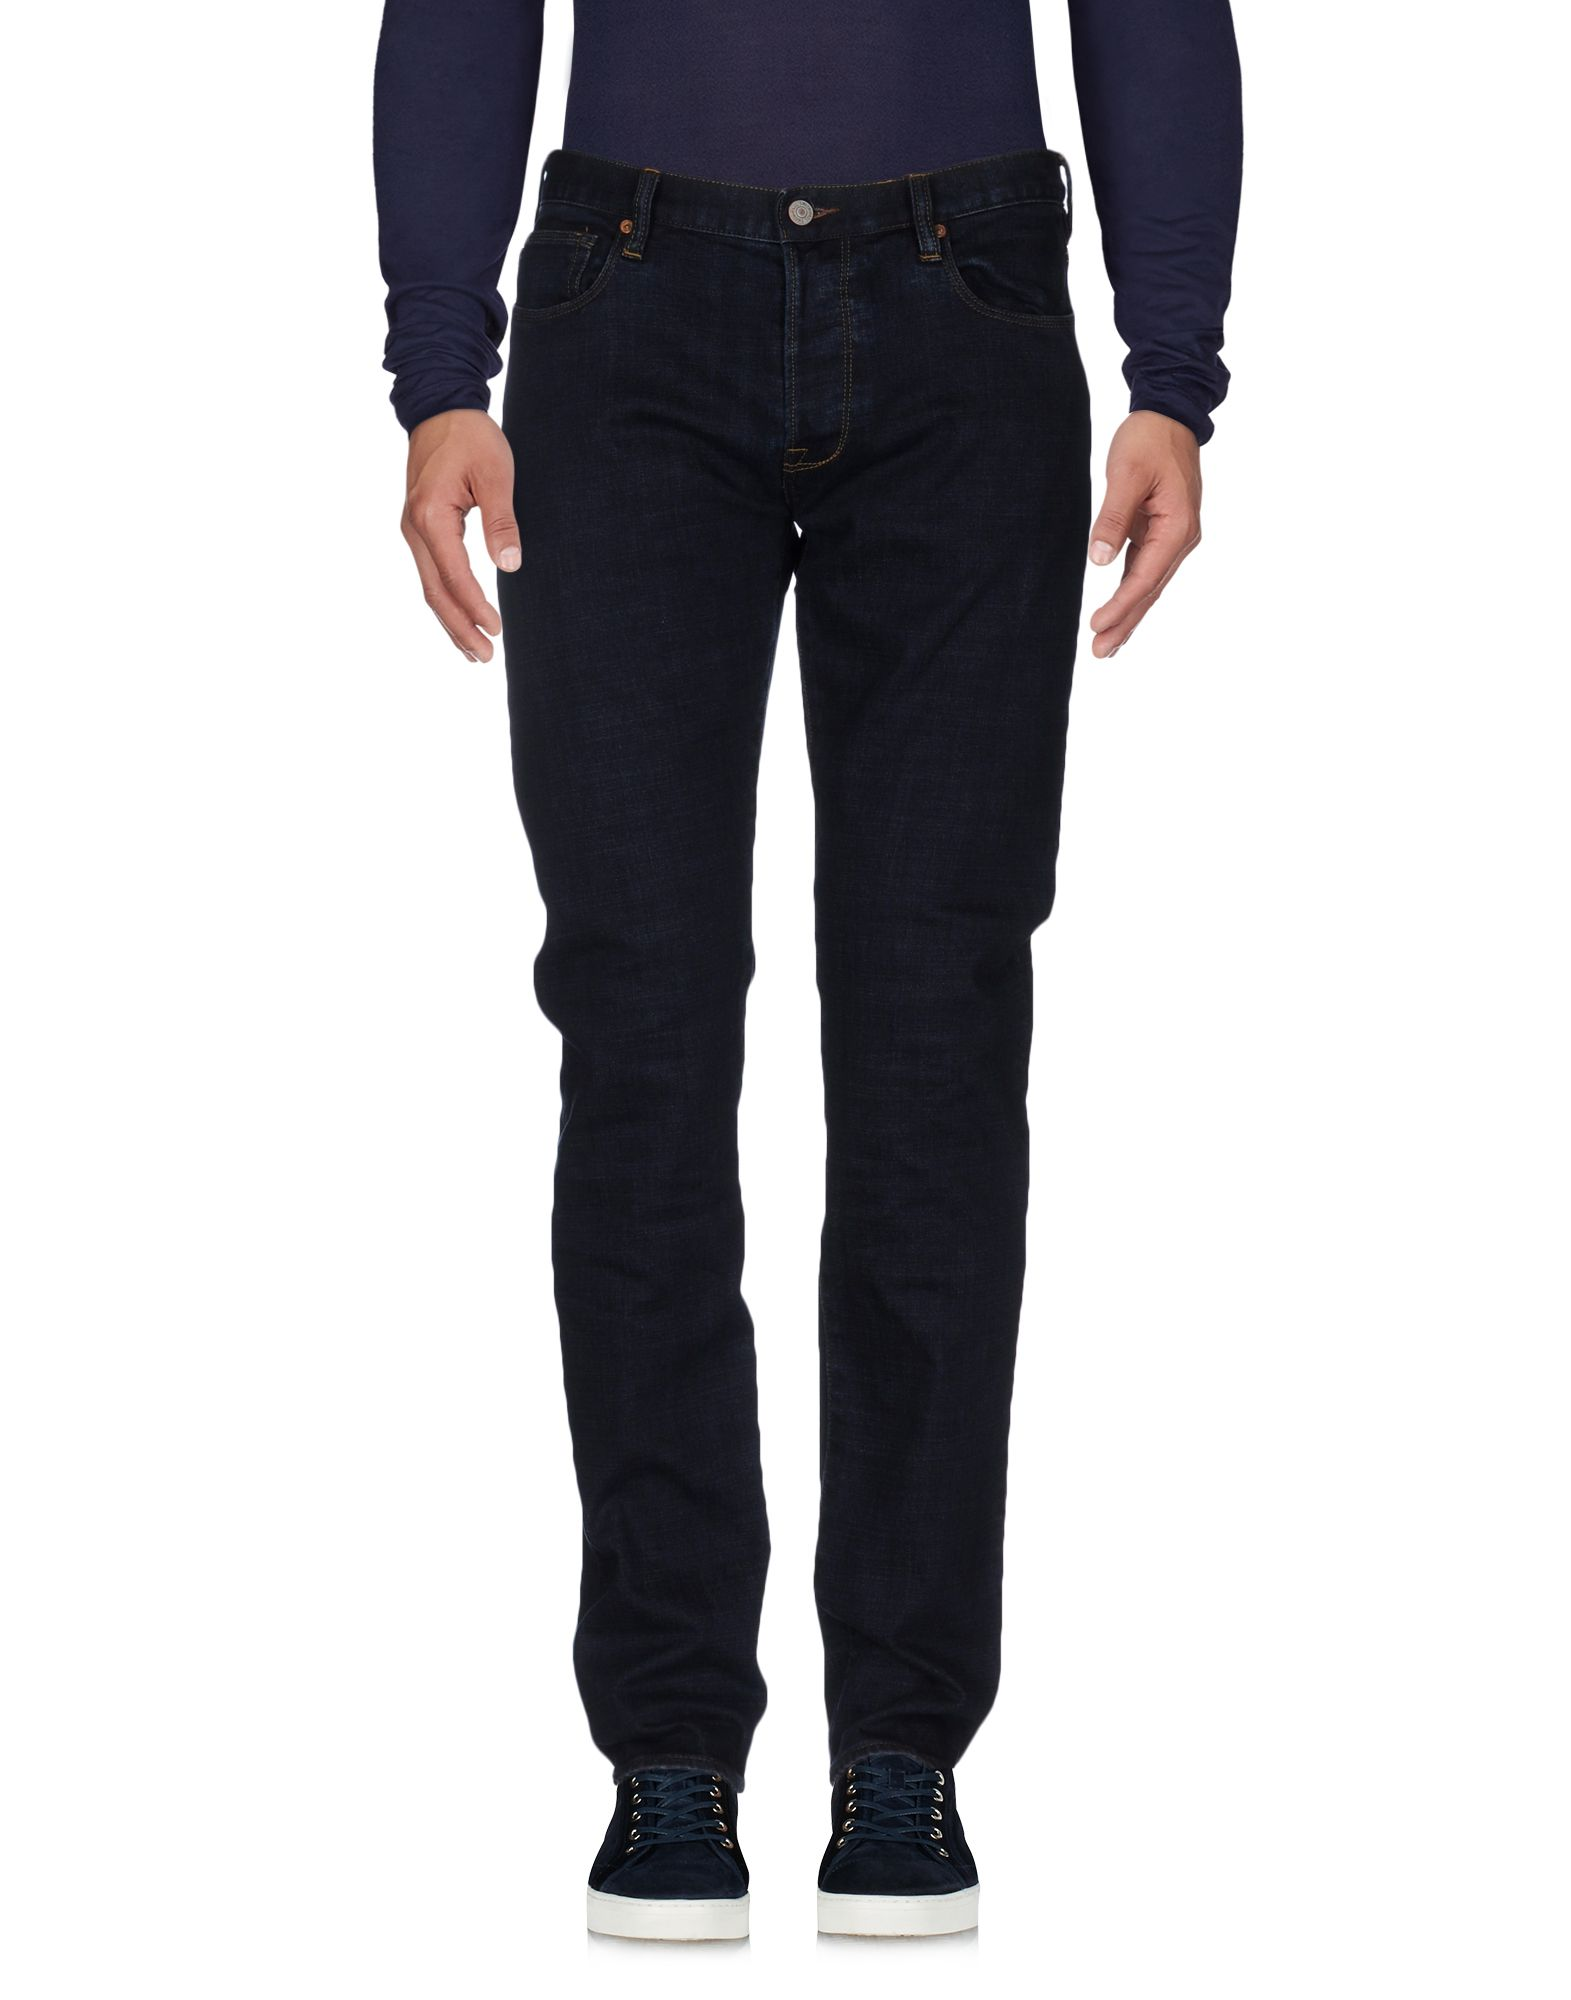 PAUL SMITH JEANS Jeans